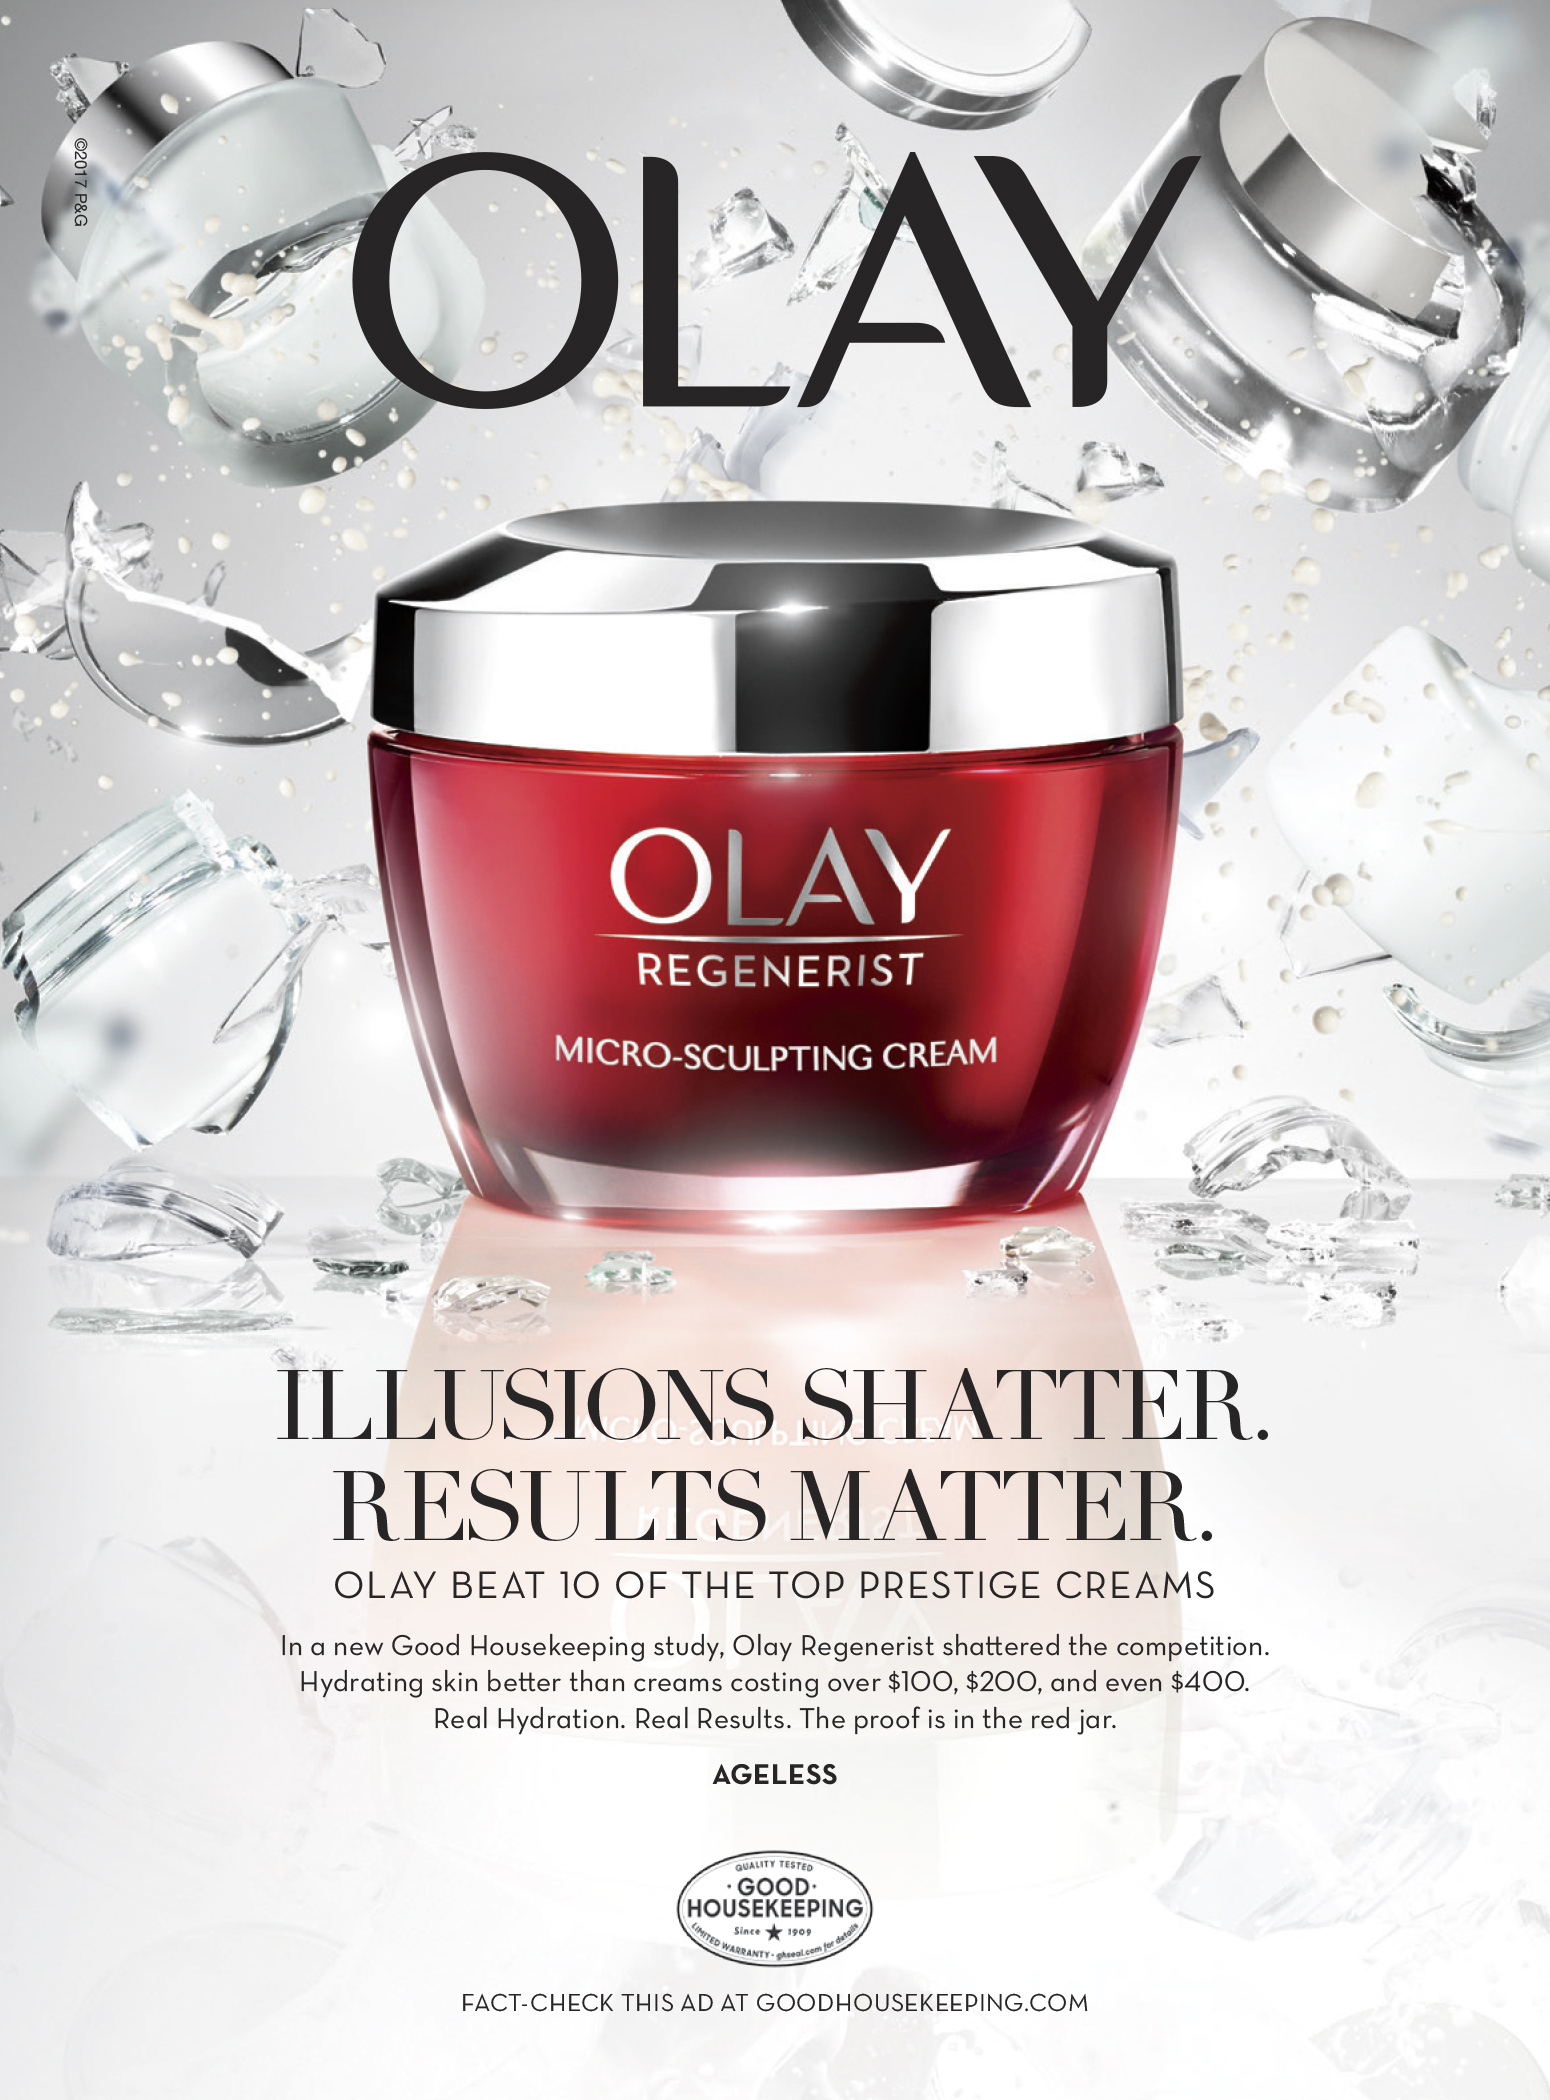 Olay beat 10 of the top prestige creams (Photo: Business Wire)